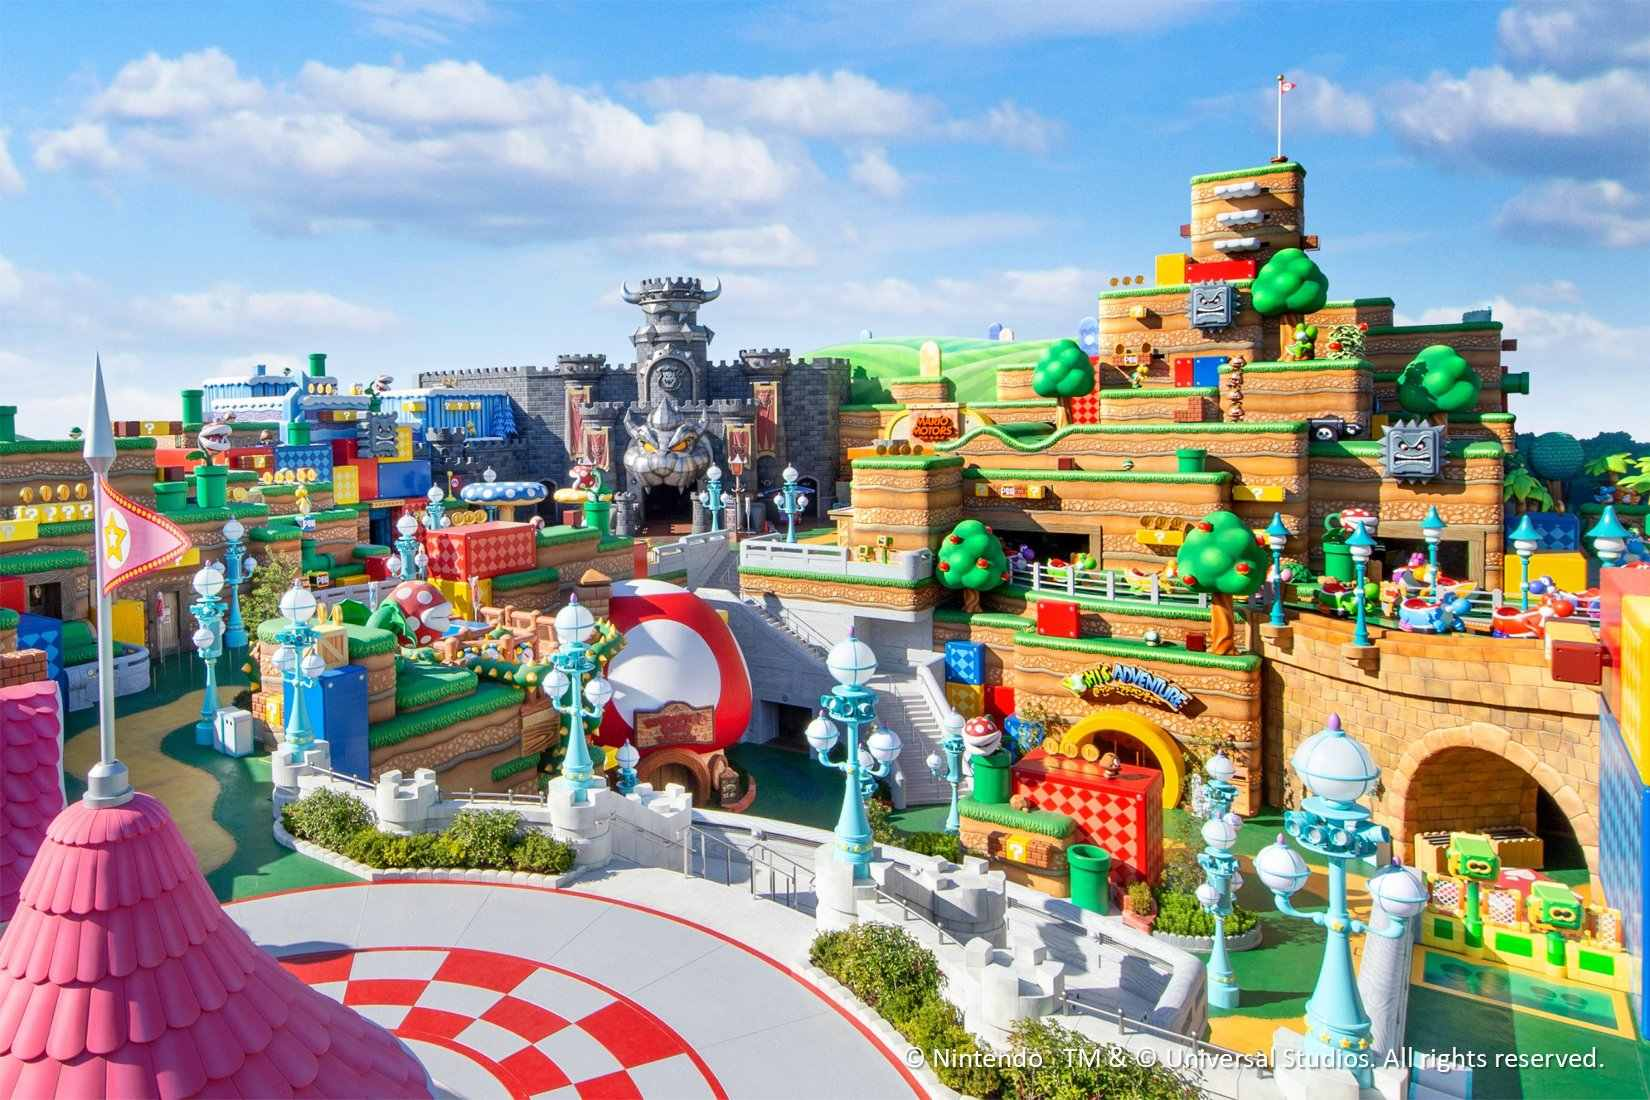 Super Nintendo World 2 - 2021 opening